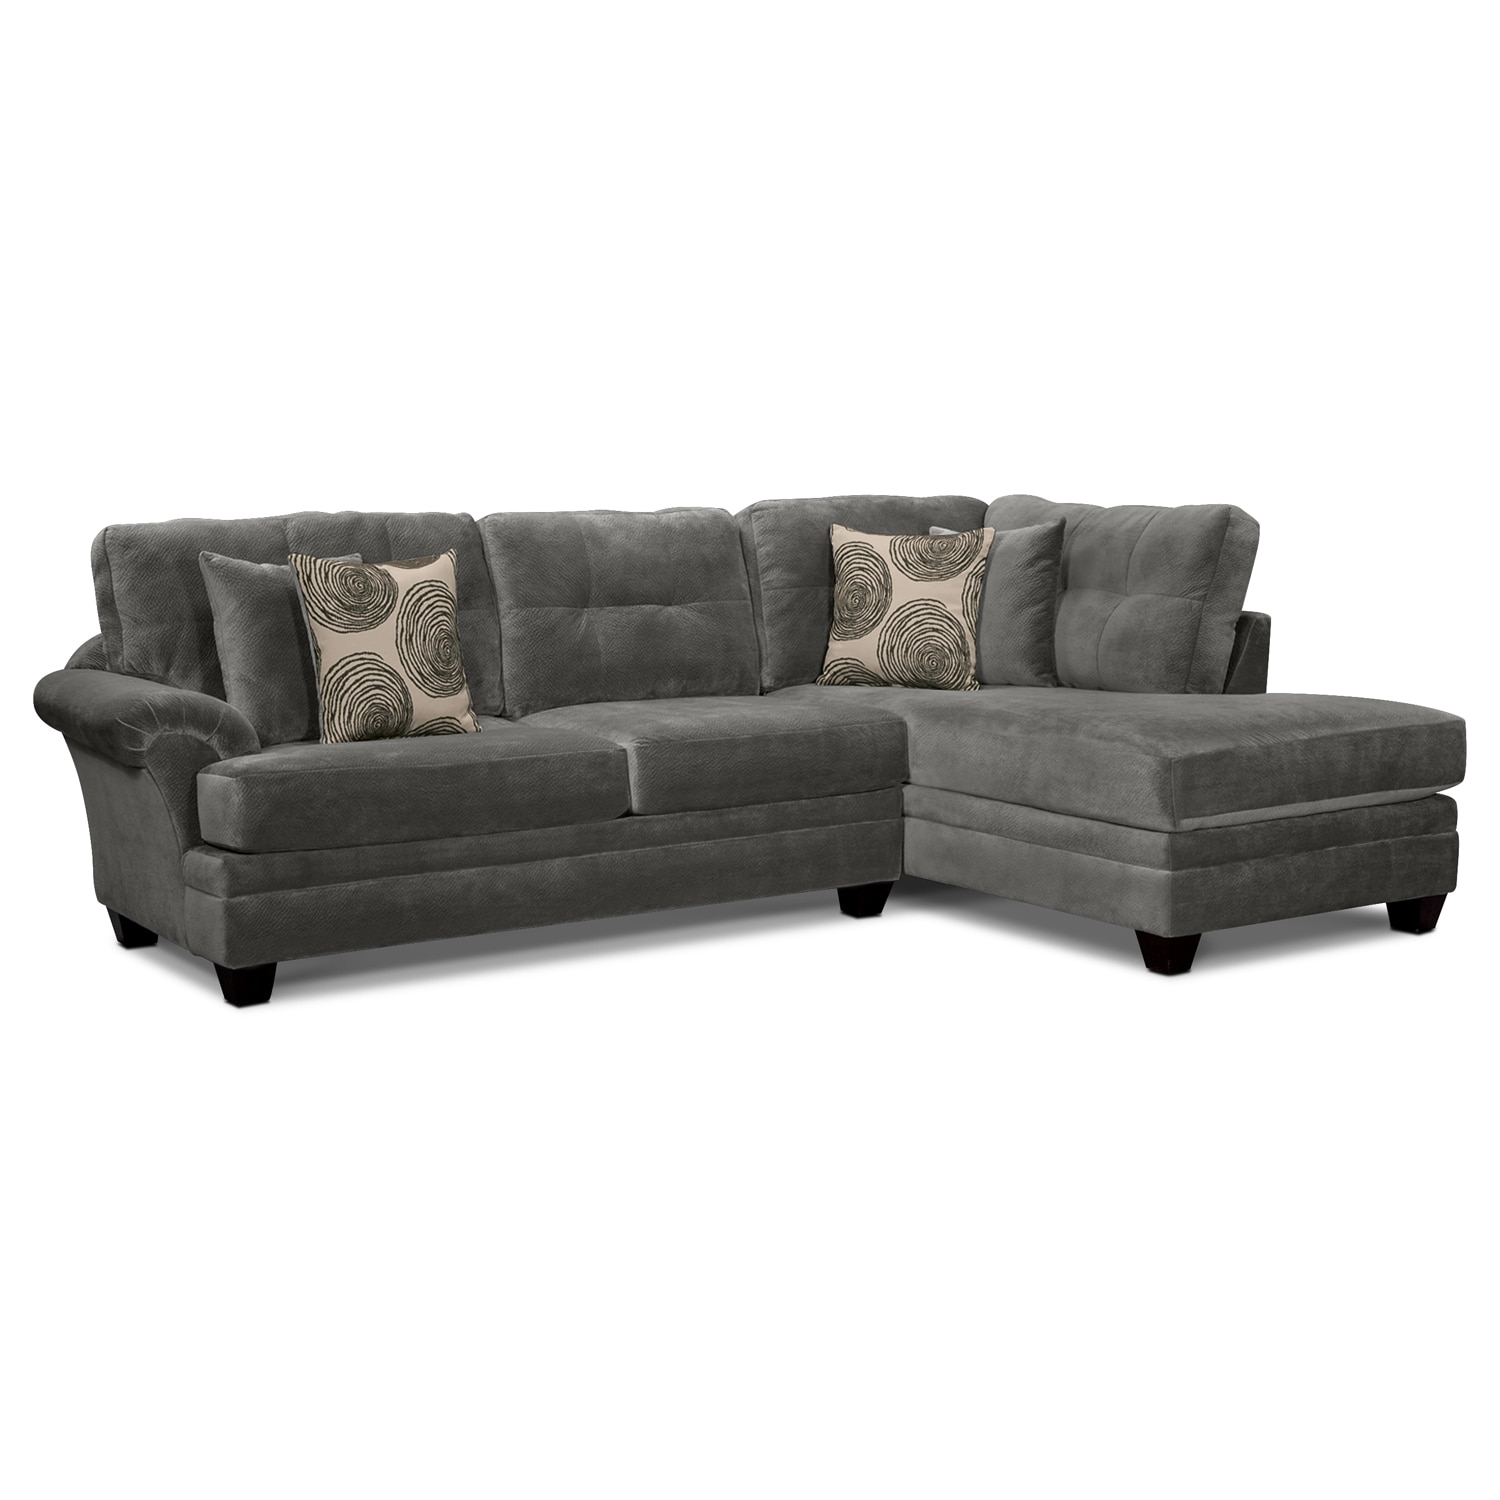 Cordelle 2-Piece Right-Facing Chaise Sectional - Gray